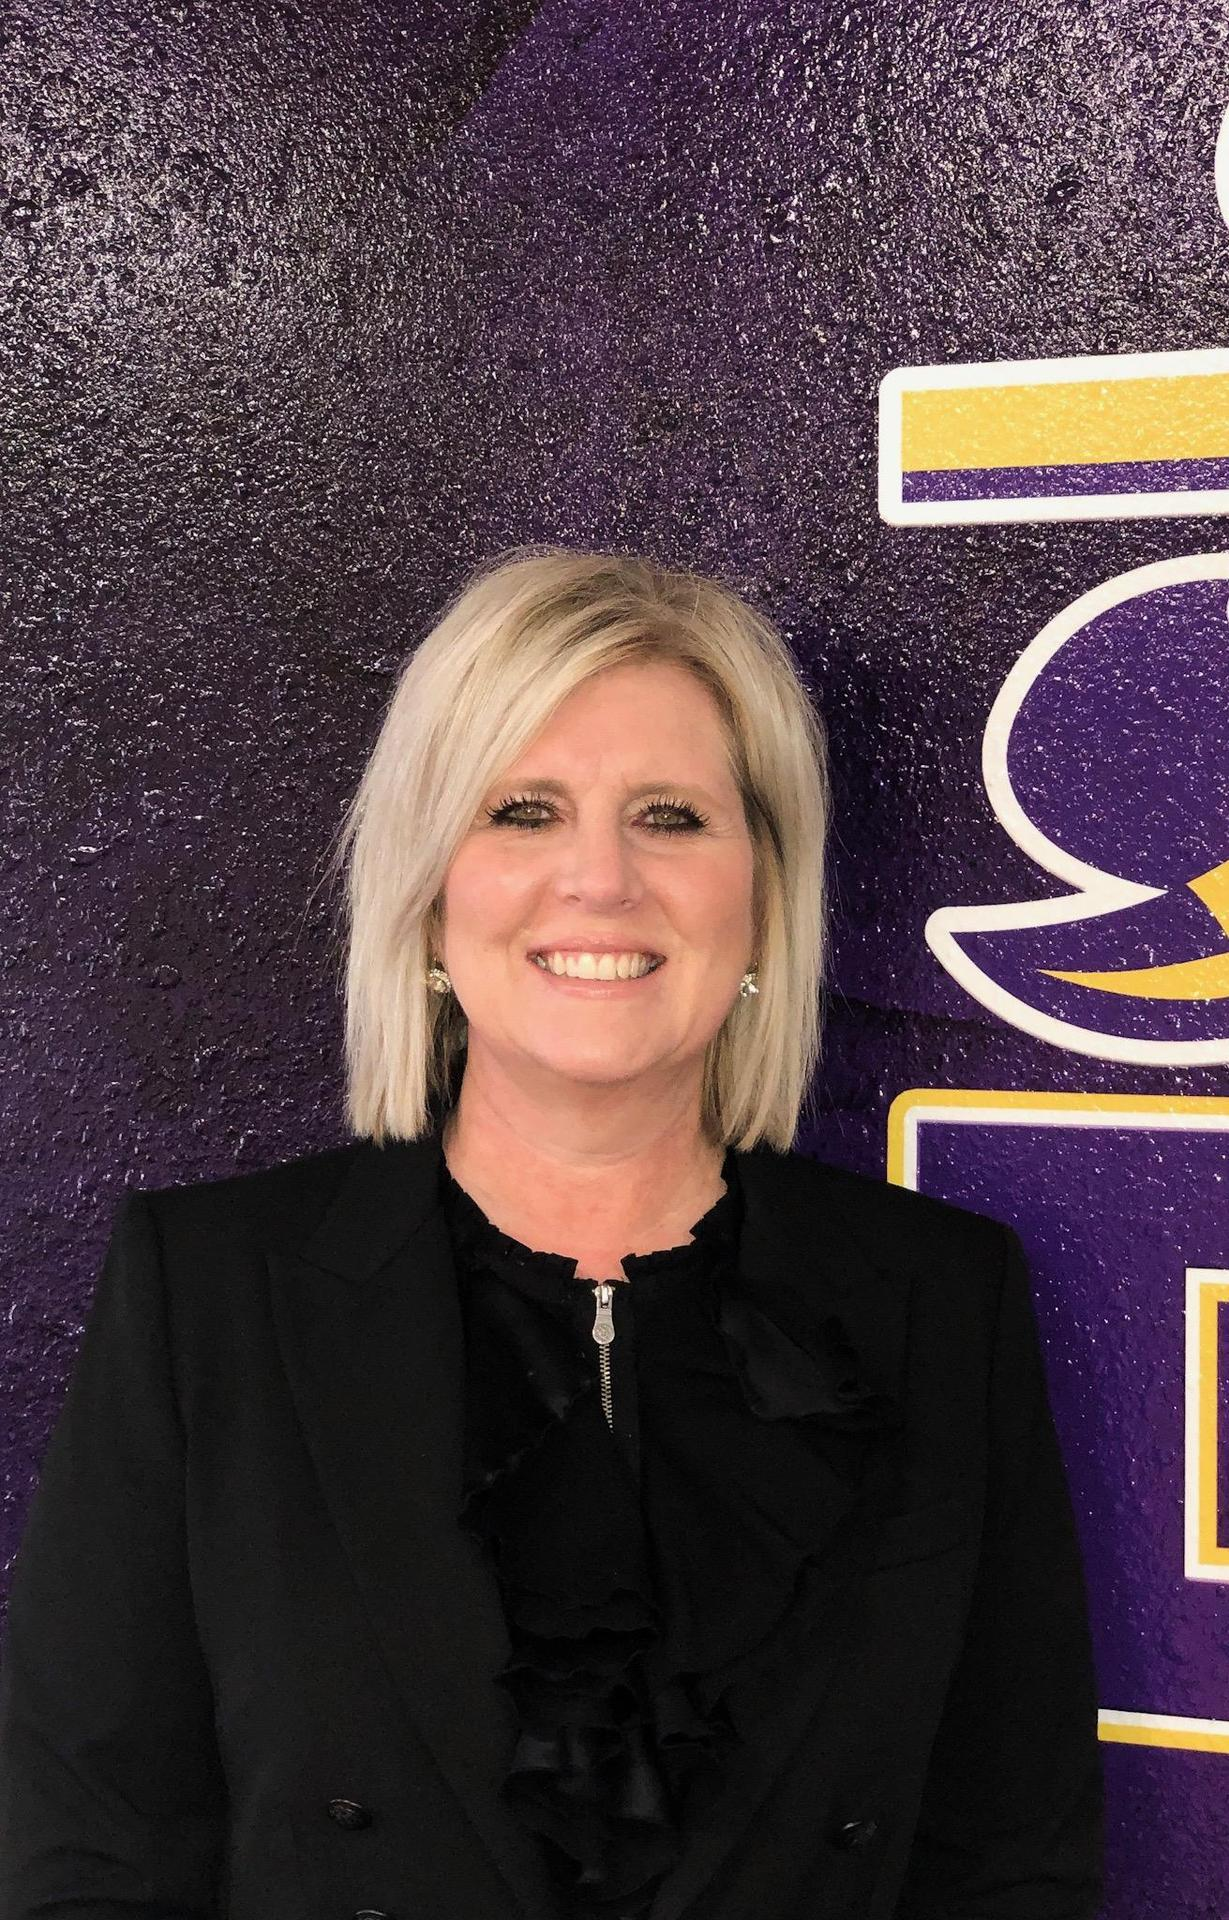 Leann Loyless, Assistant Superintendent